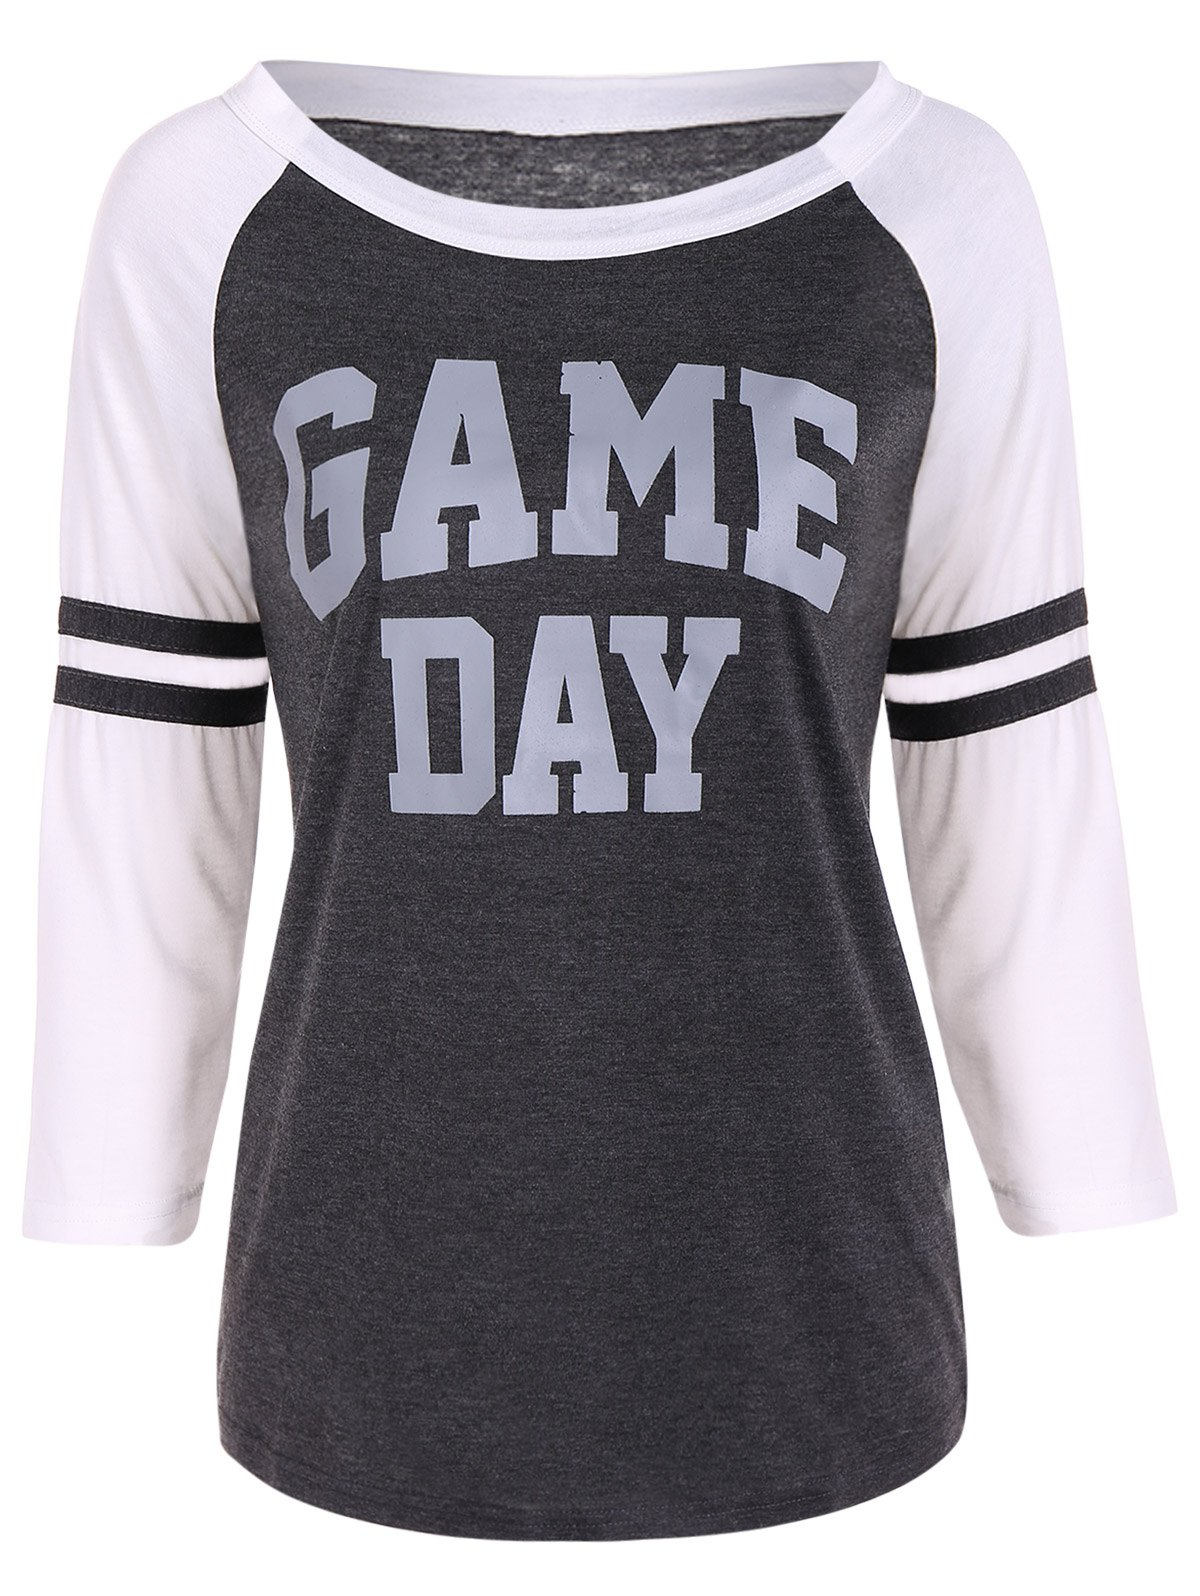 8f928f3c66f 2019 Game Day Graphic Raglan Sleeves Baseball Tee Shirts | Rosegal.com